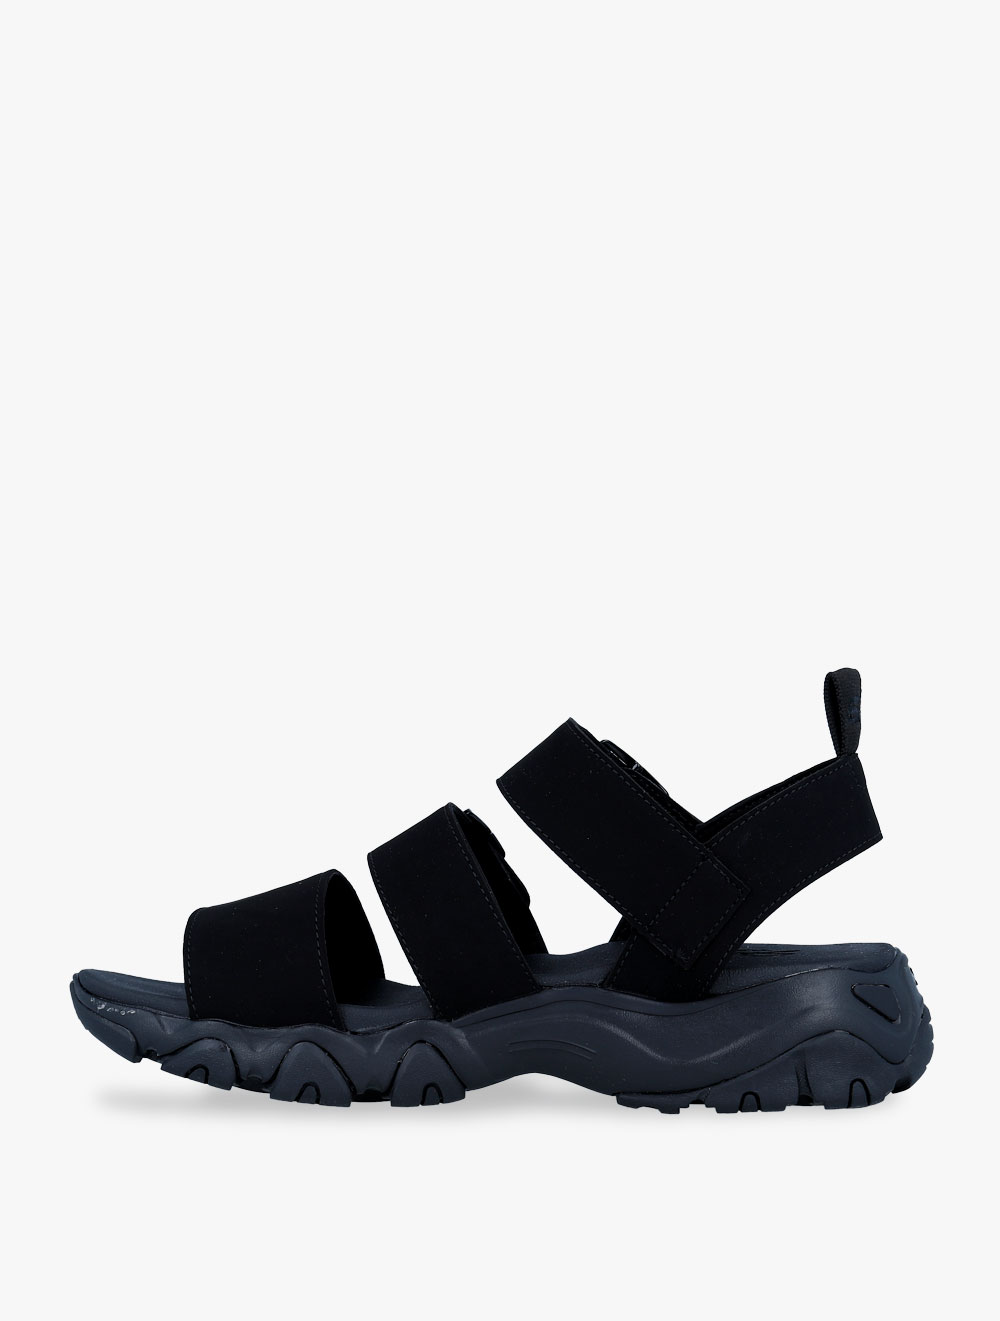 Sneakersoko: X P b ` [ Y SKECHERS sandals D light